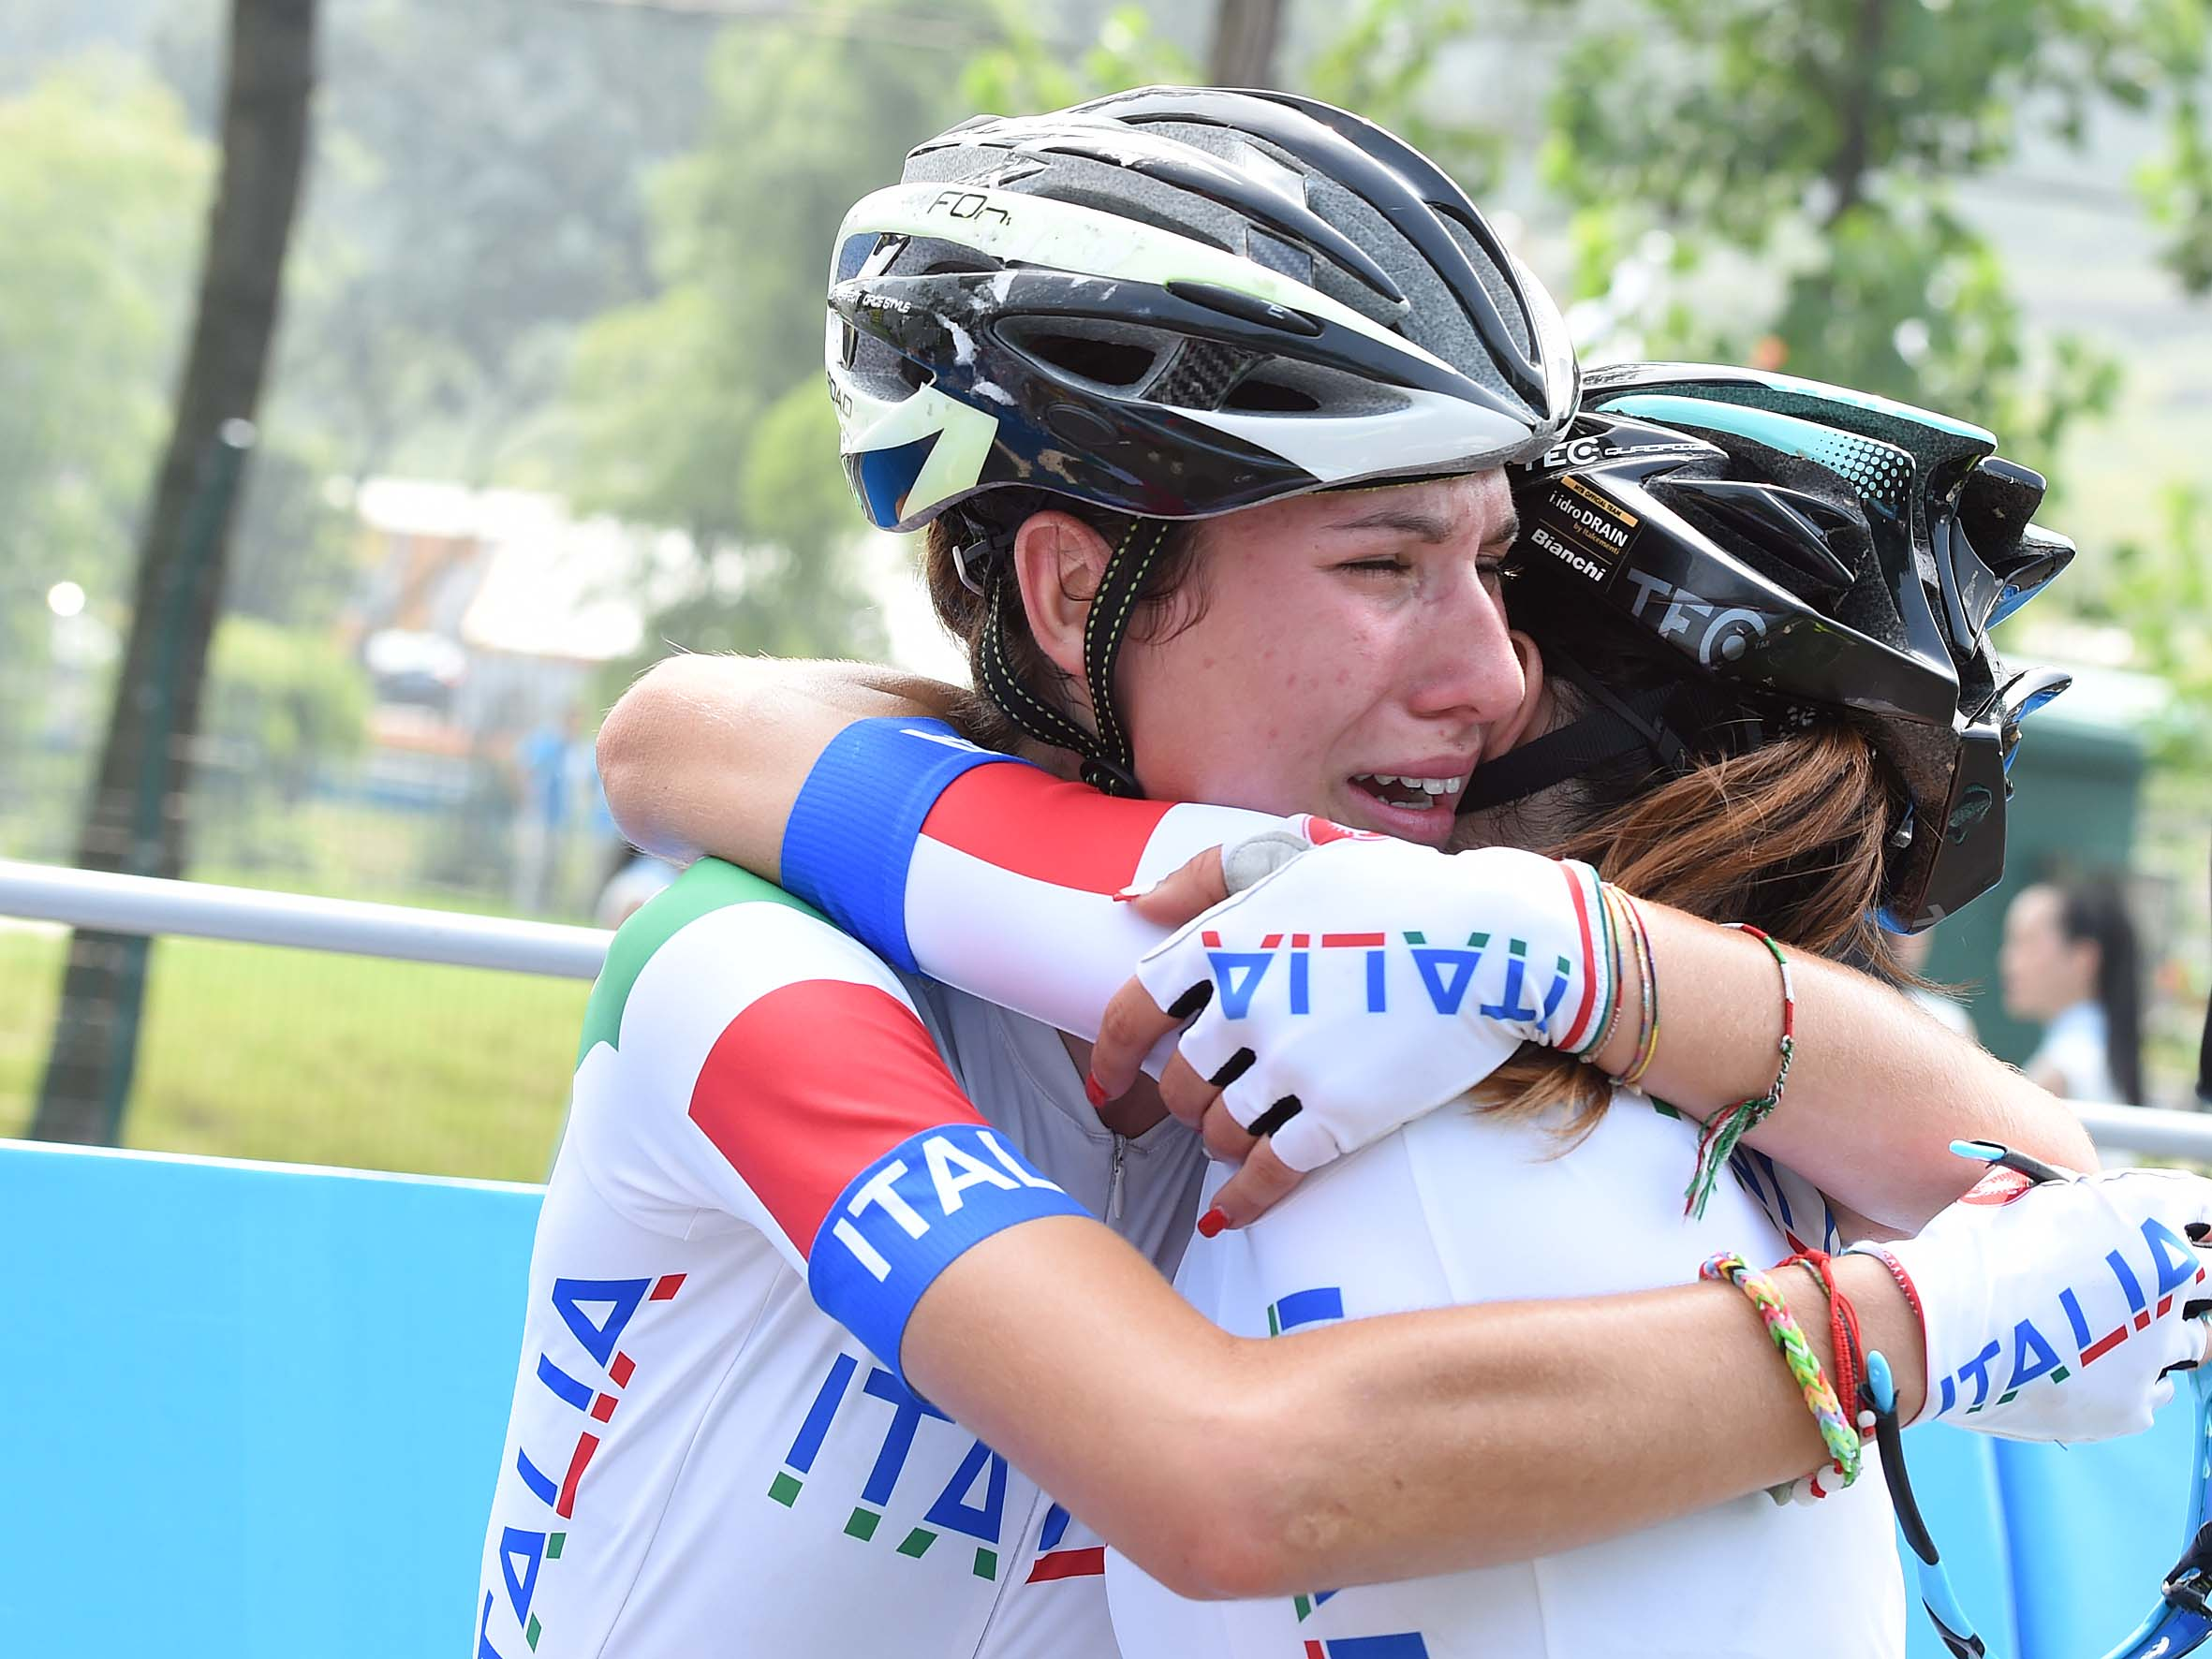 Ciclismo donne 12